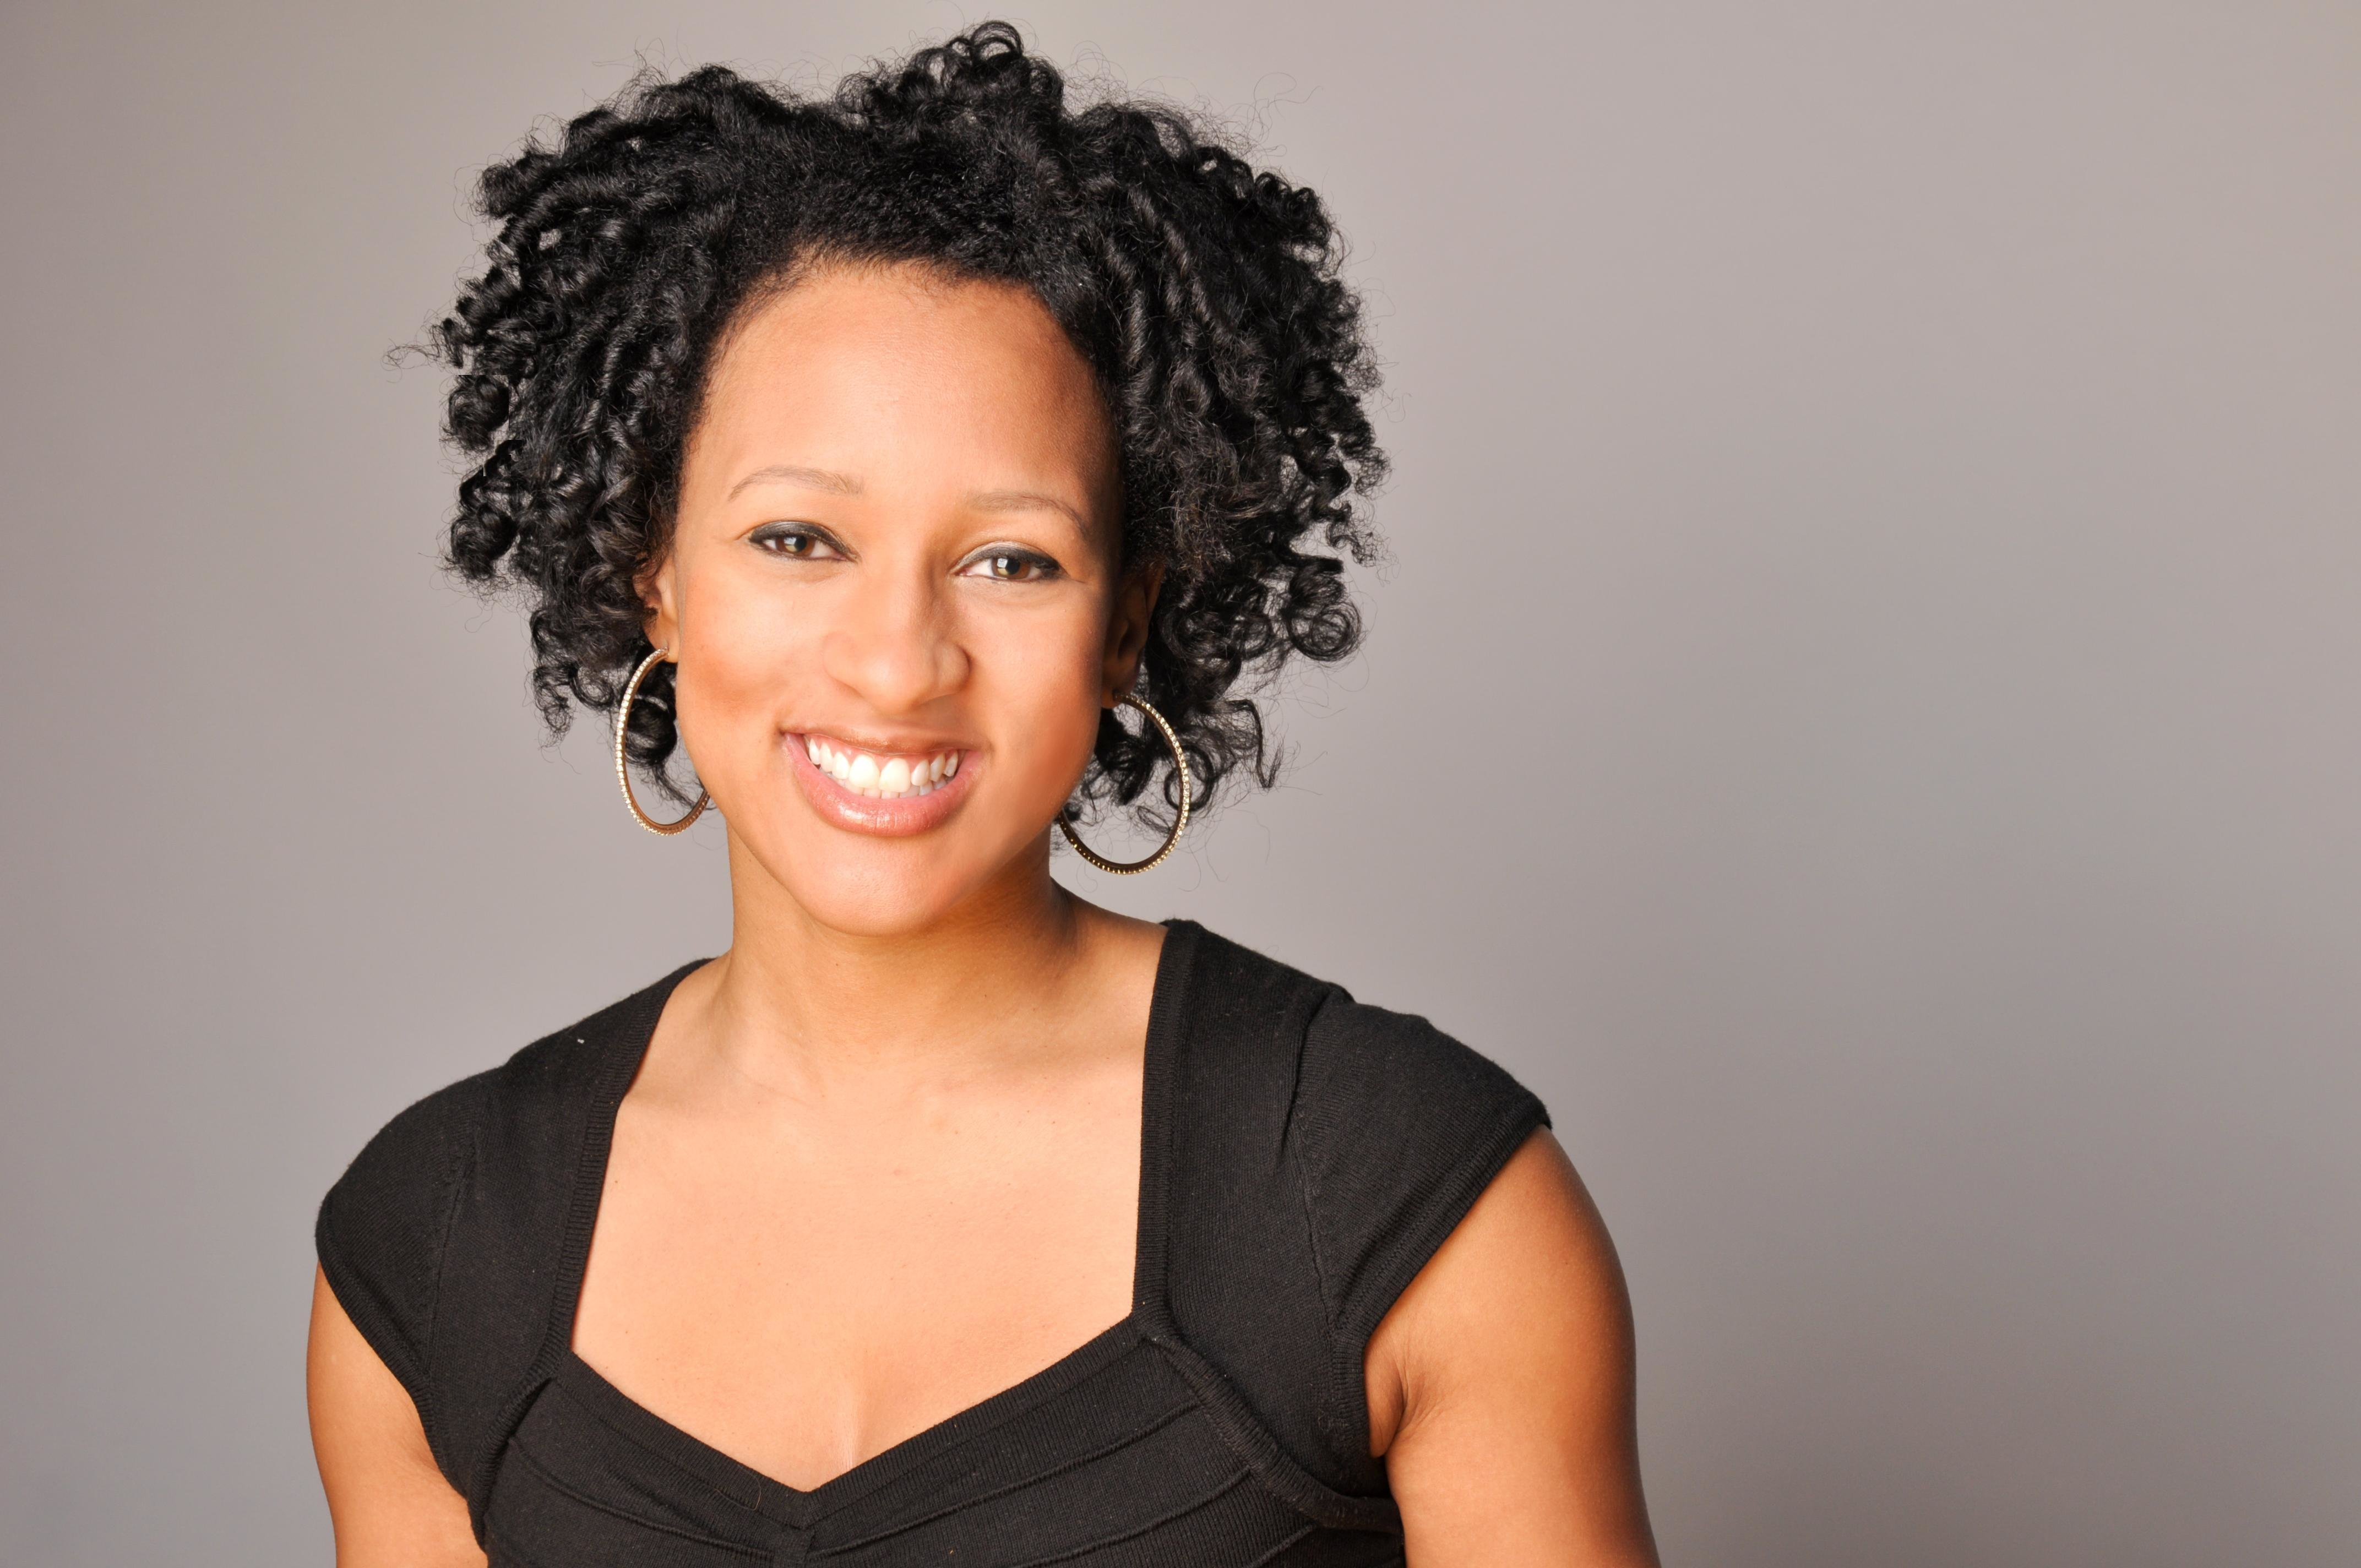 The Best 30 Impressive Short Natural Hairstyles For Black Women Pictures